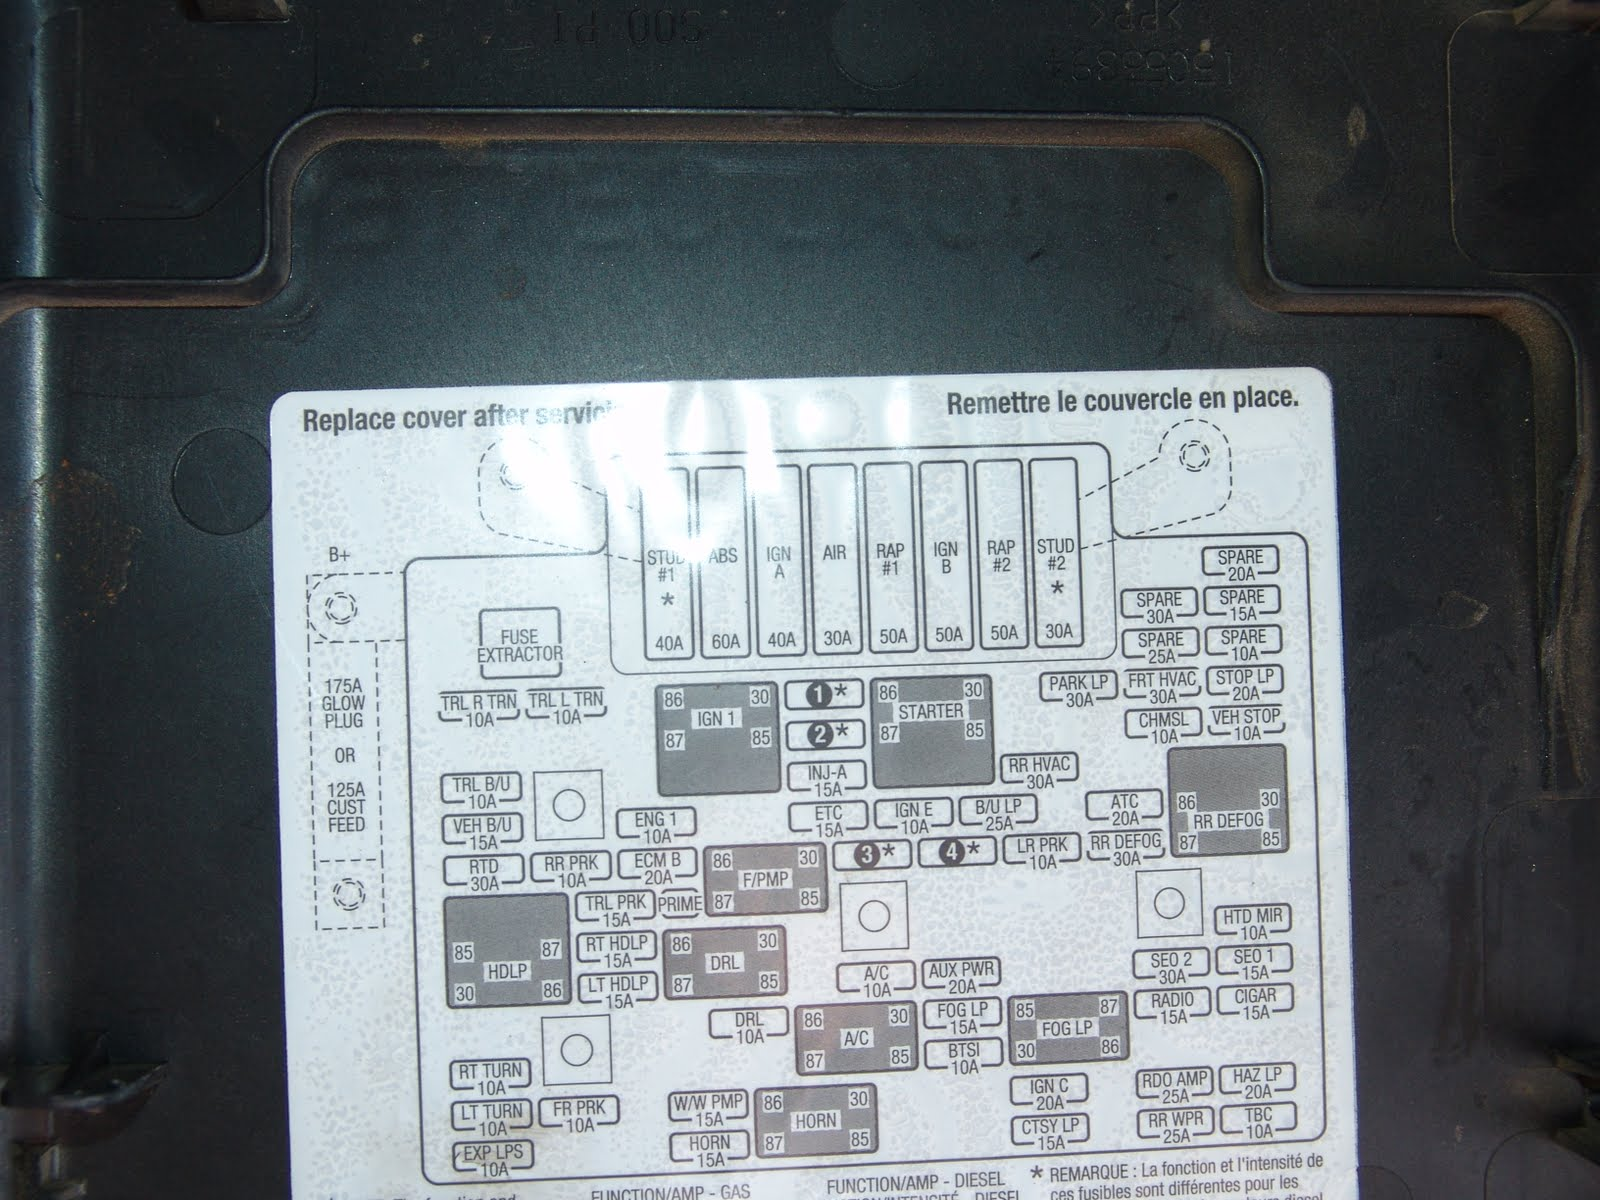 Kw T800 Fuse Box - Mitsubishi Fuses Diagram for Wiring Diagram SchematicsWiring Diagram Schematics